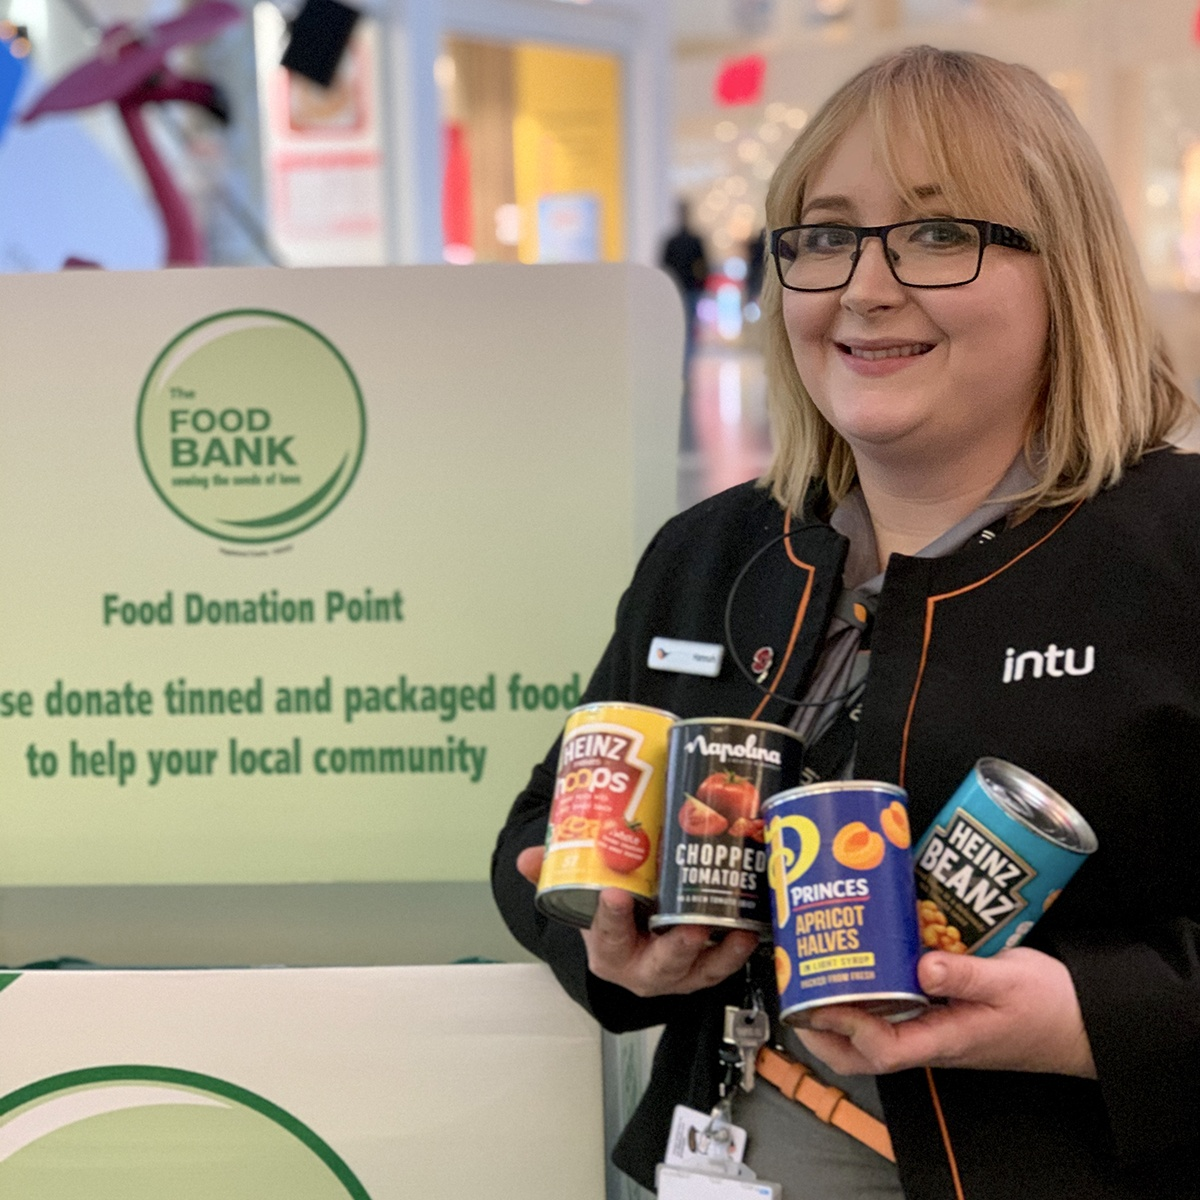 intu MK launches Festive Food Drop campaign for MK Food Bank